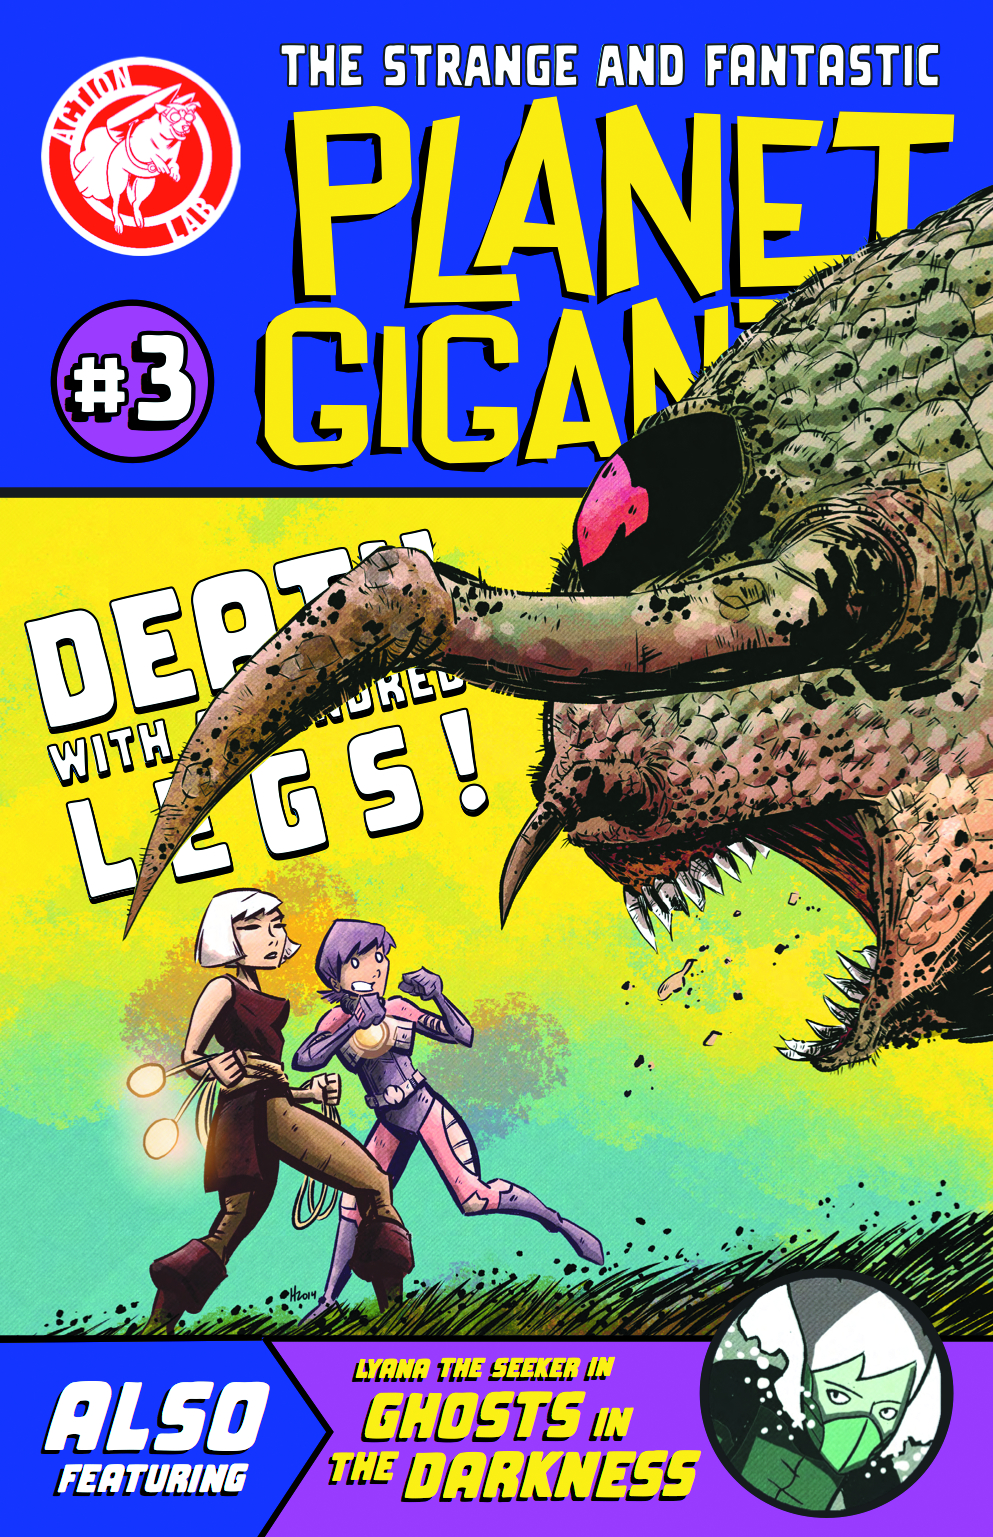 PLANET GIGANTIC #3 (OF 4)